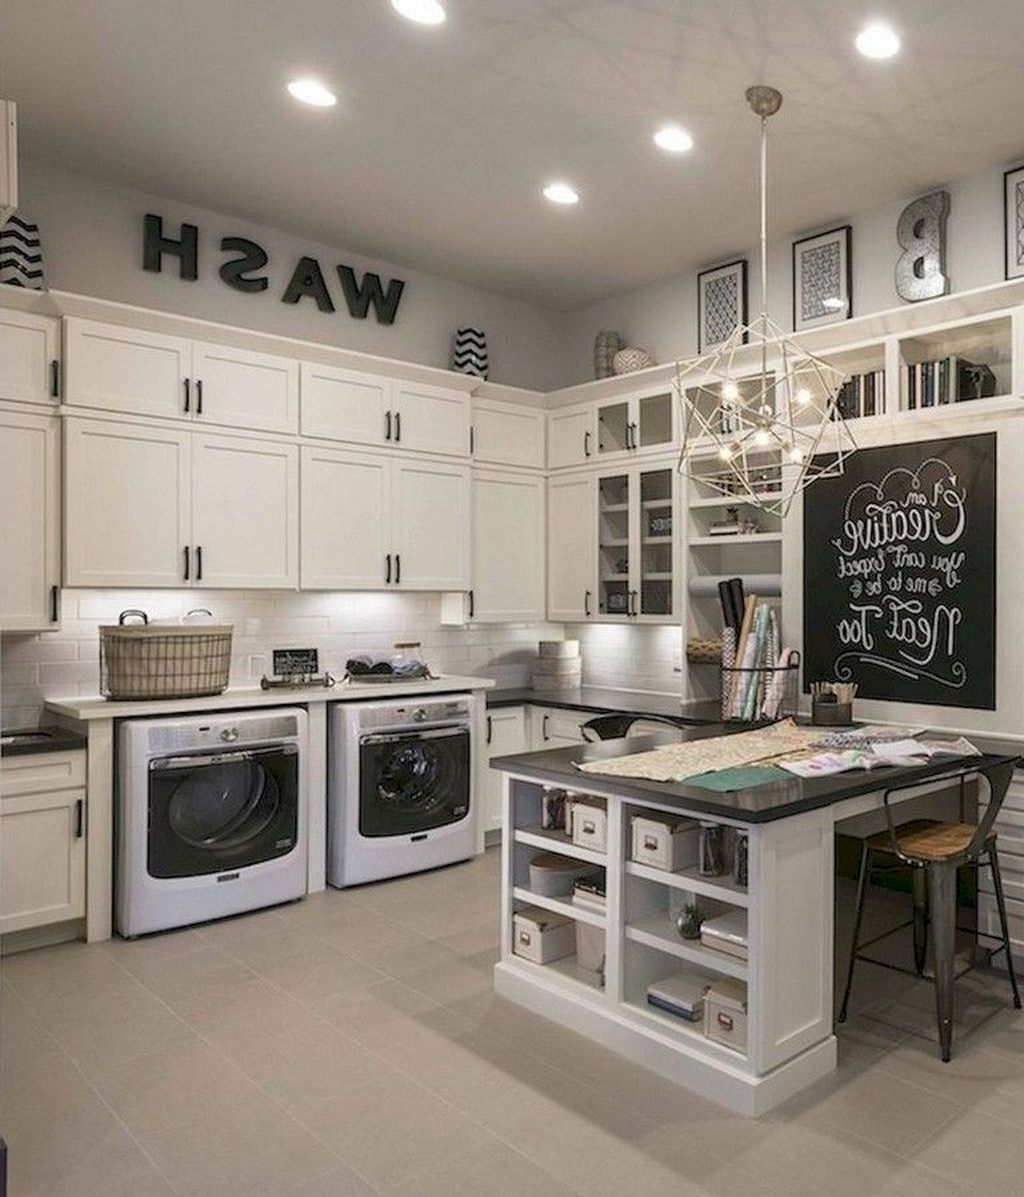 20+ Cute Laundry Room Storage Shelves Ideas To Consider ... on Laundry Room Shelves Ideas  id=24145